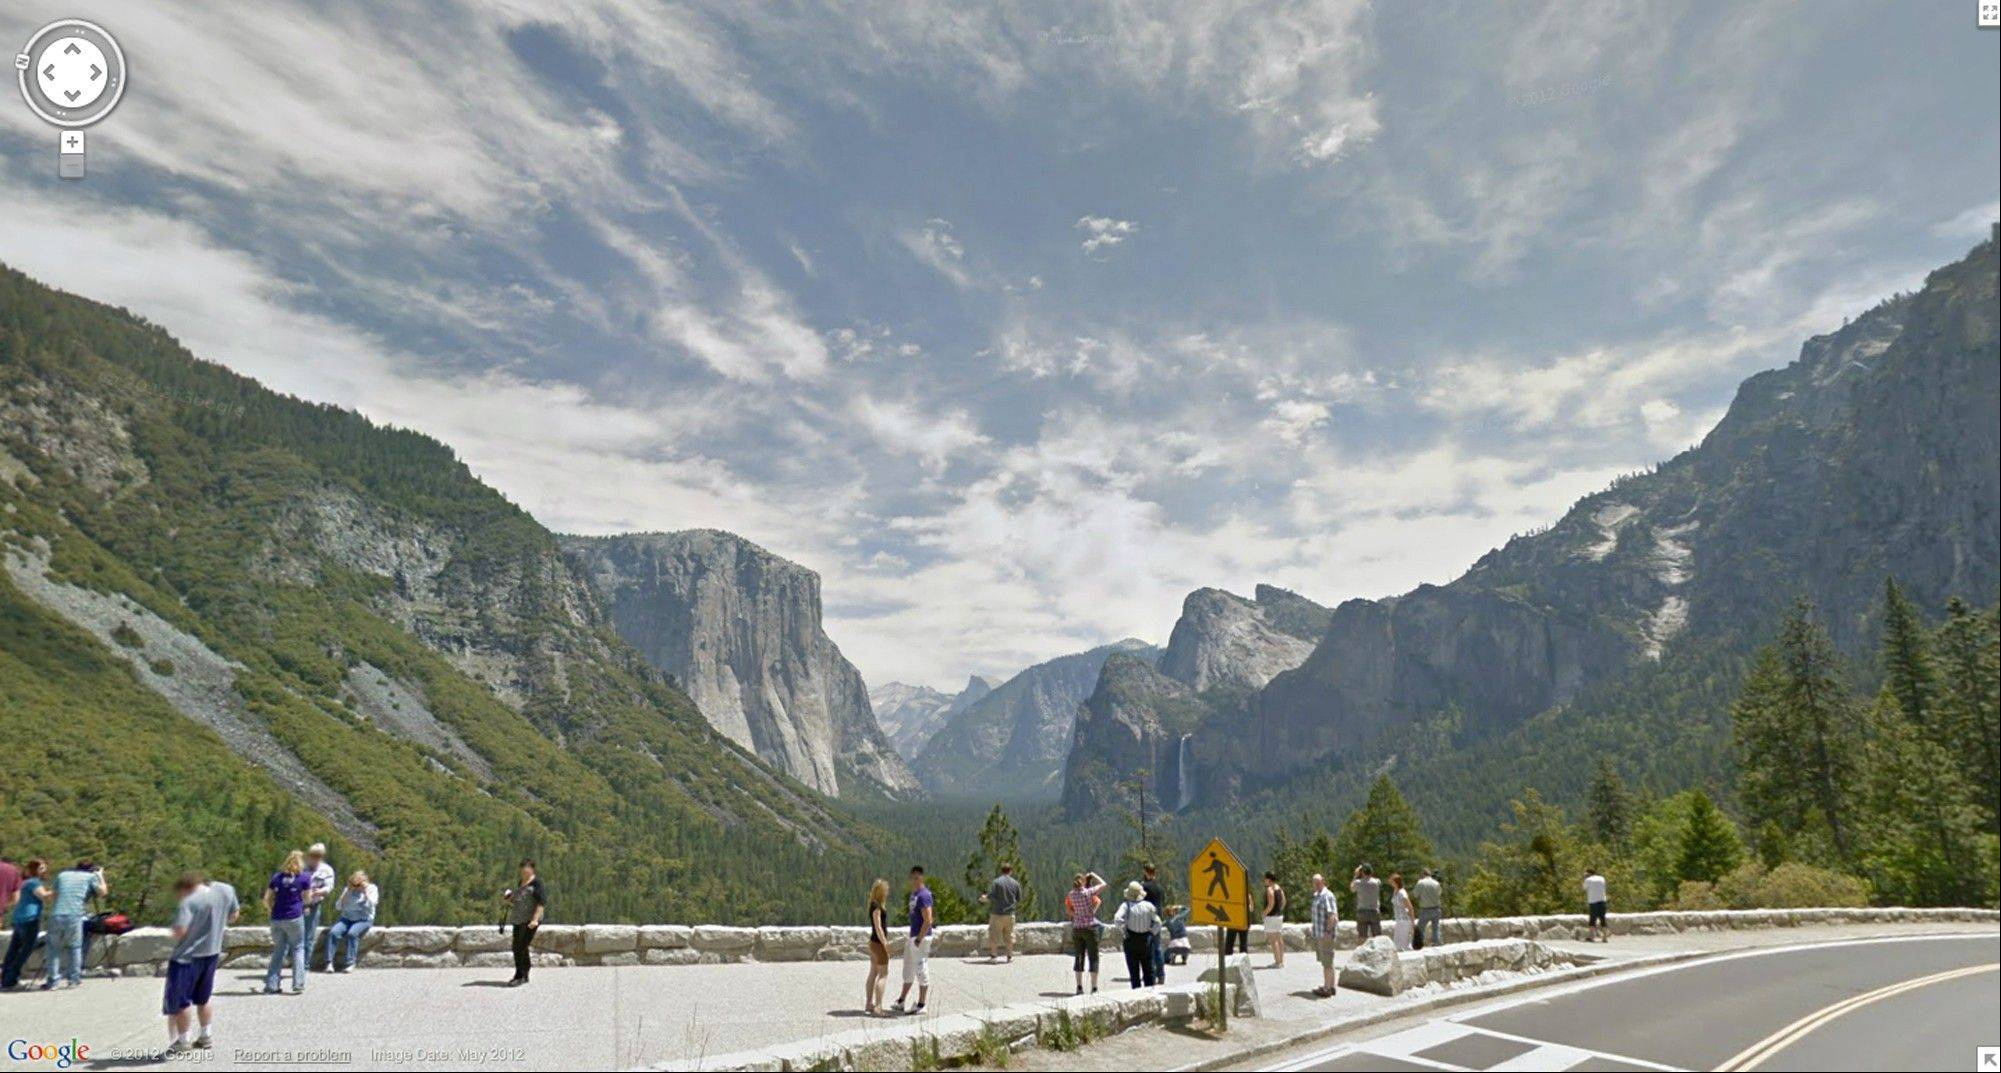 Associated Press In this Street View image provided by Google you can see Inspiration Point at Yosemite National Park in California.